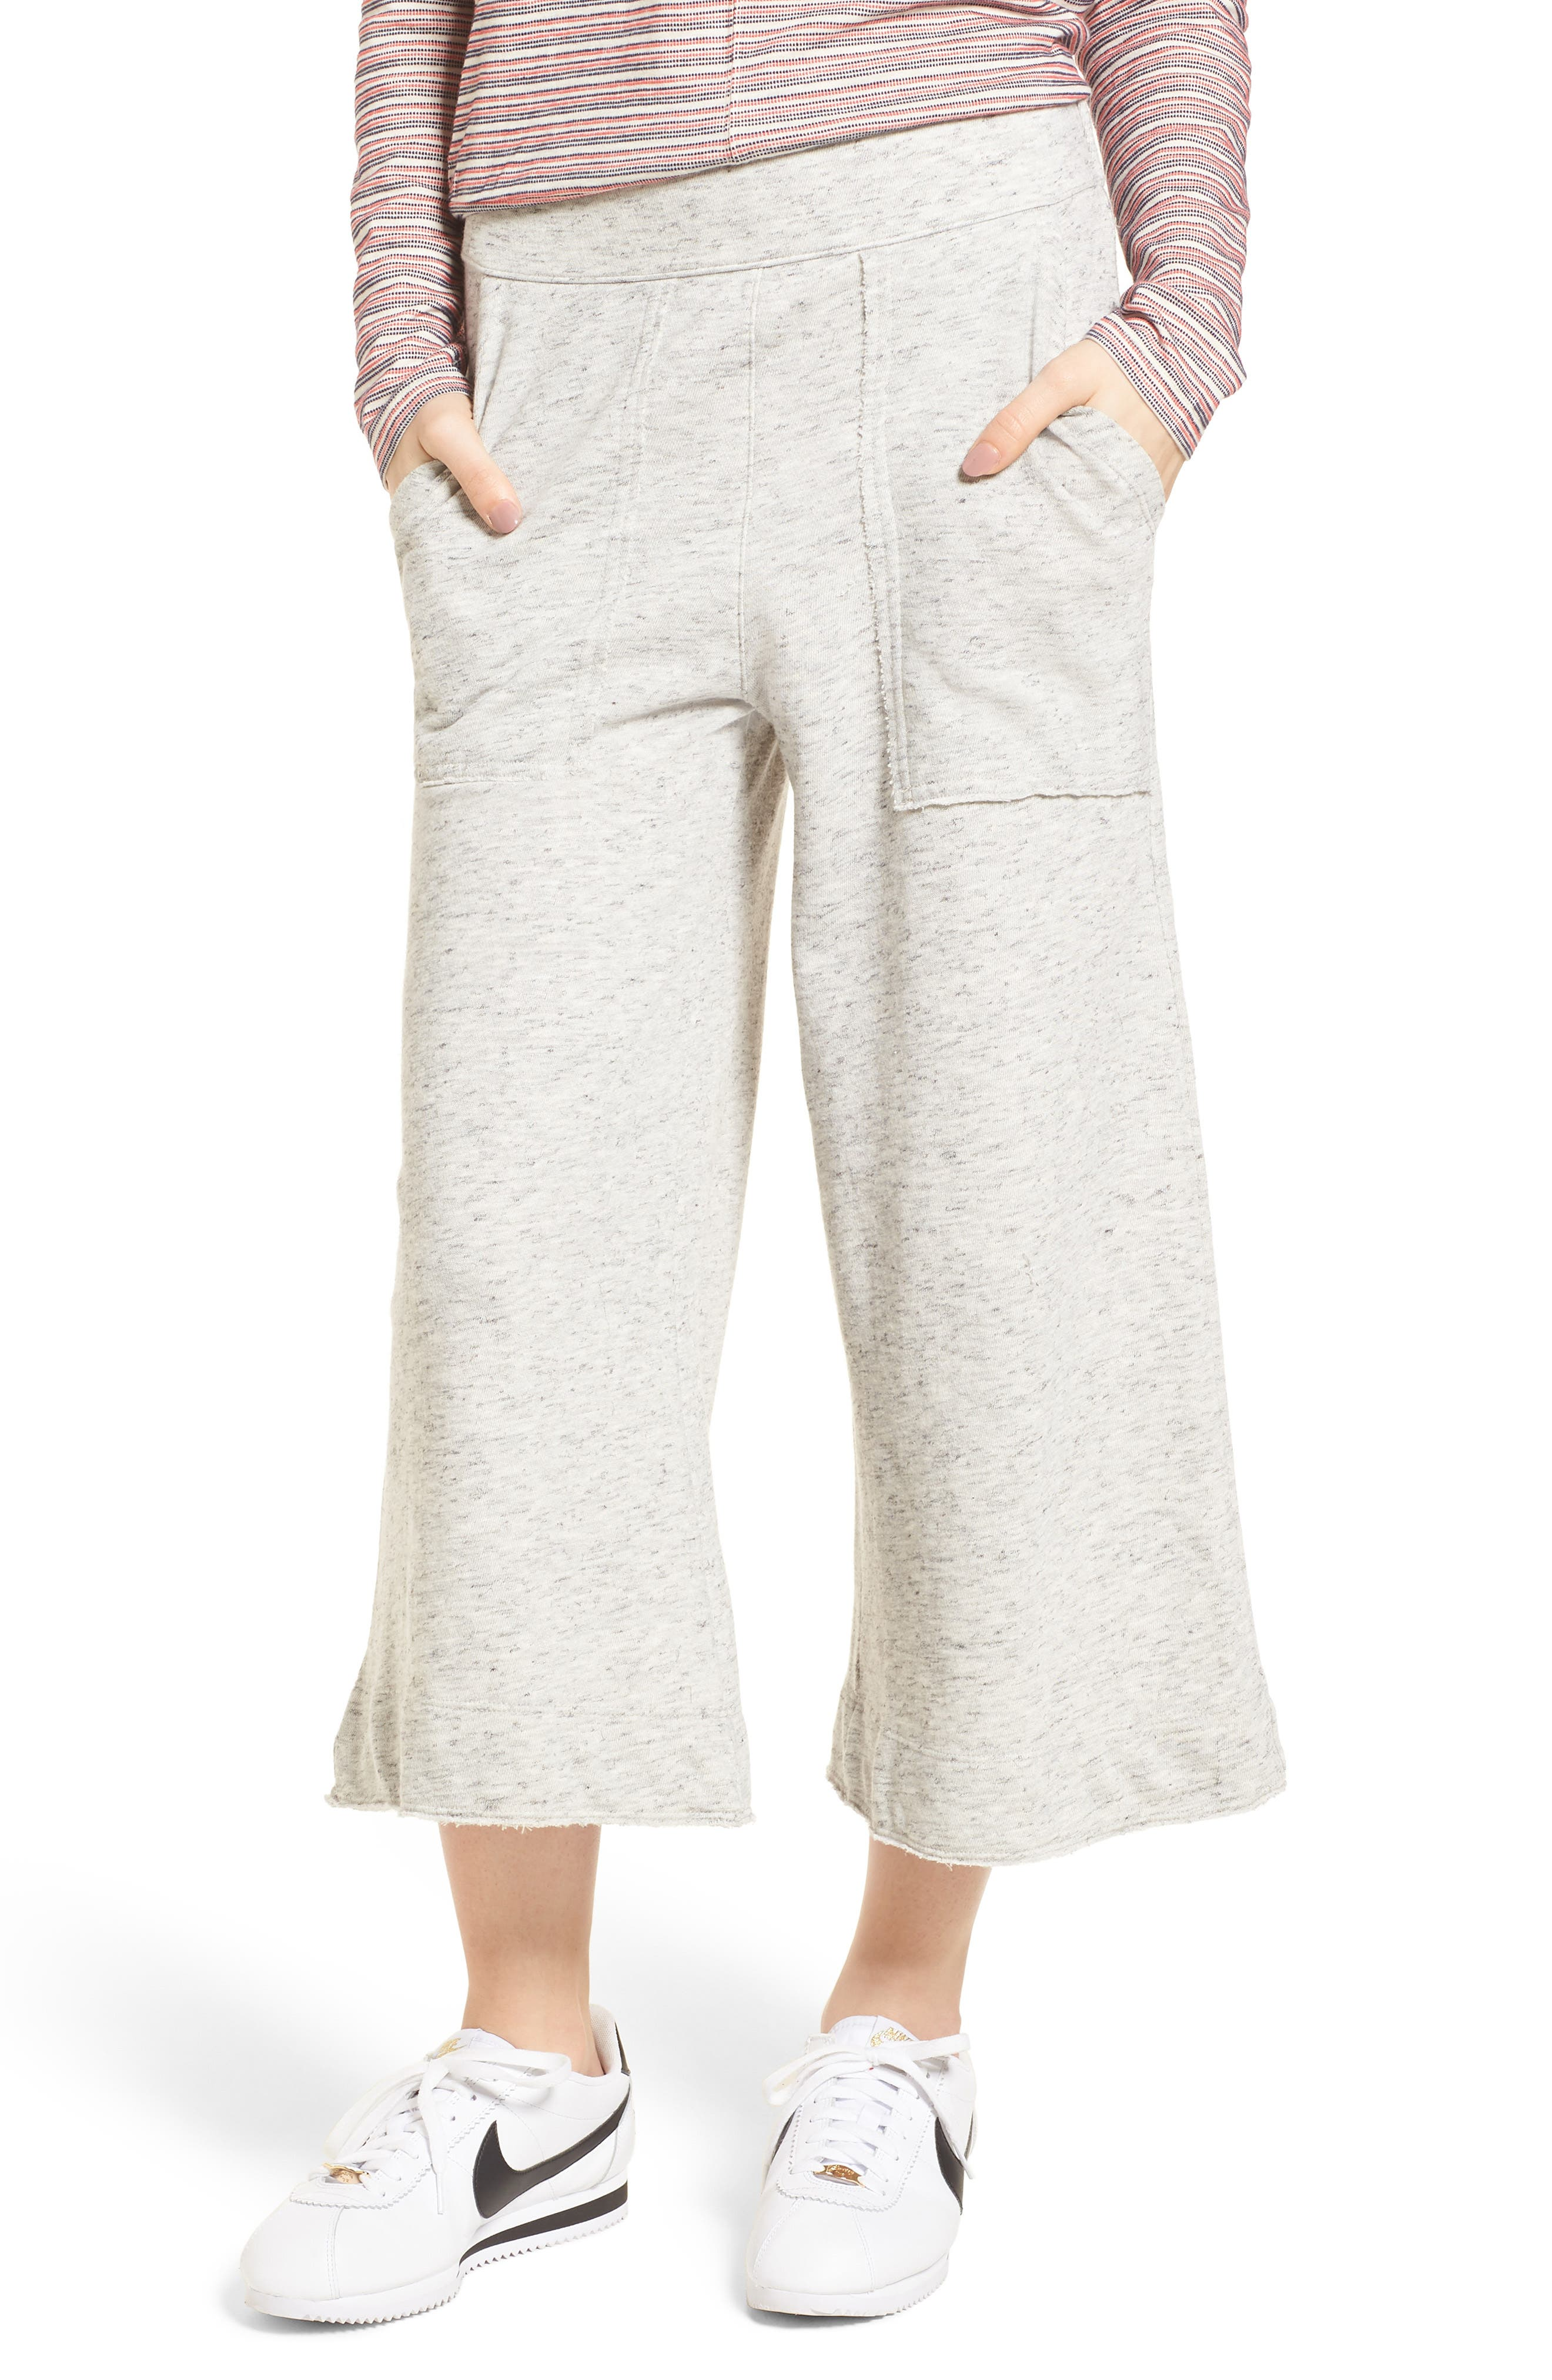 Splendid Sidelight Culotte Sweatpants